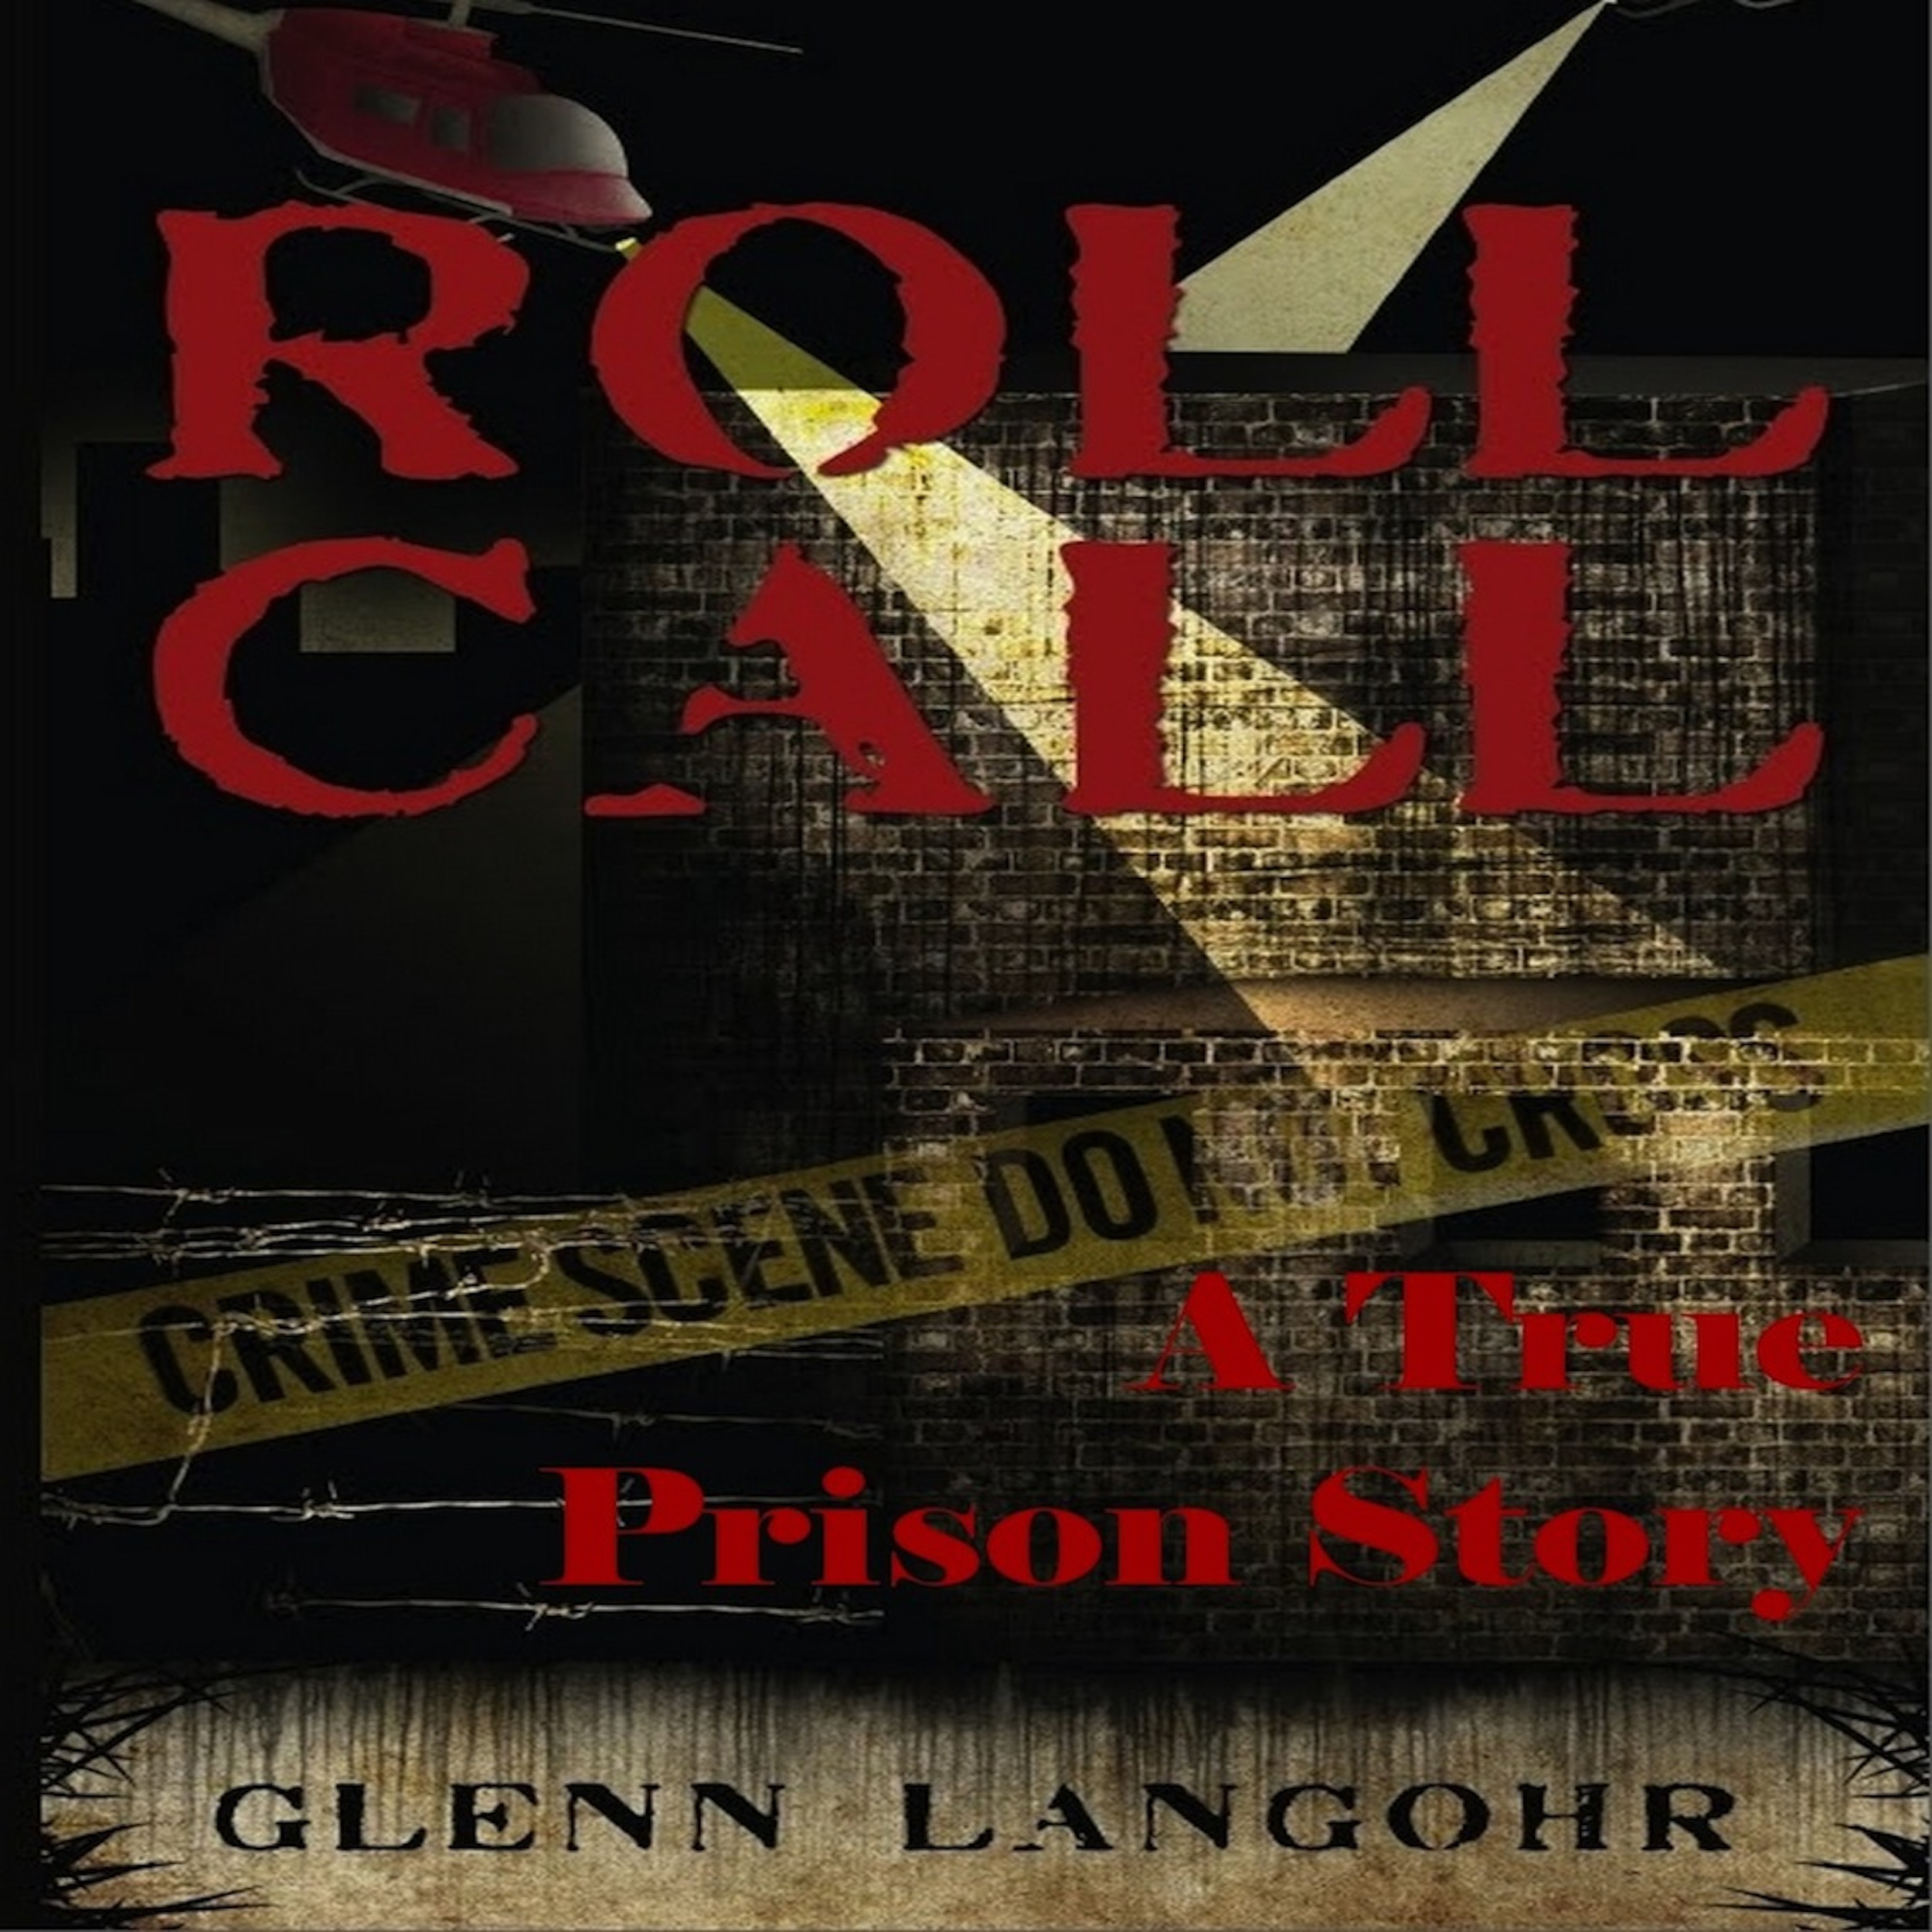 an interview best selling prison author glenn langohr glenn image